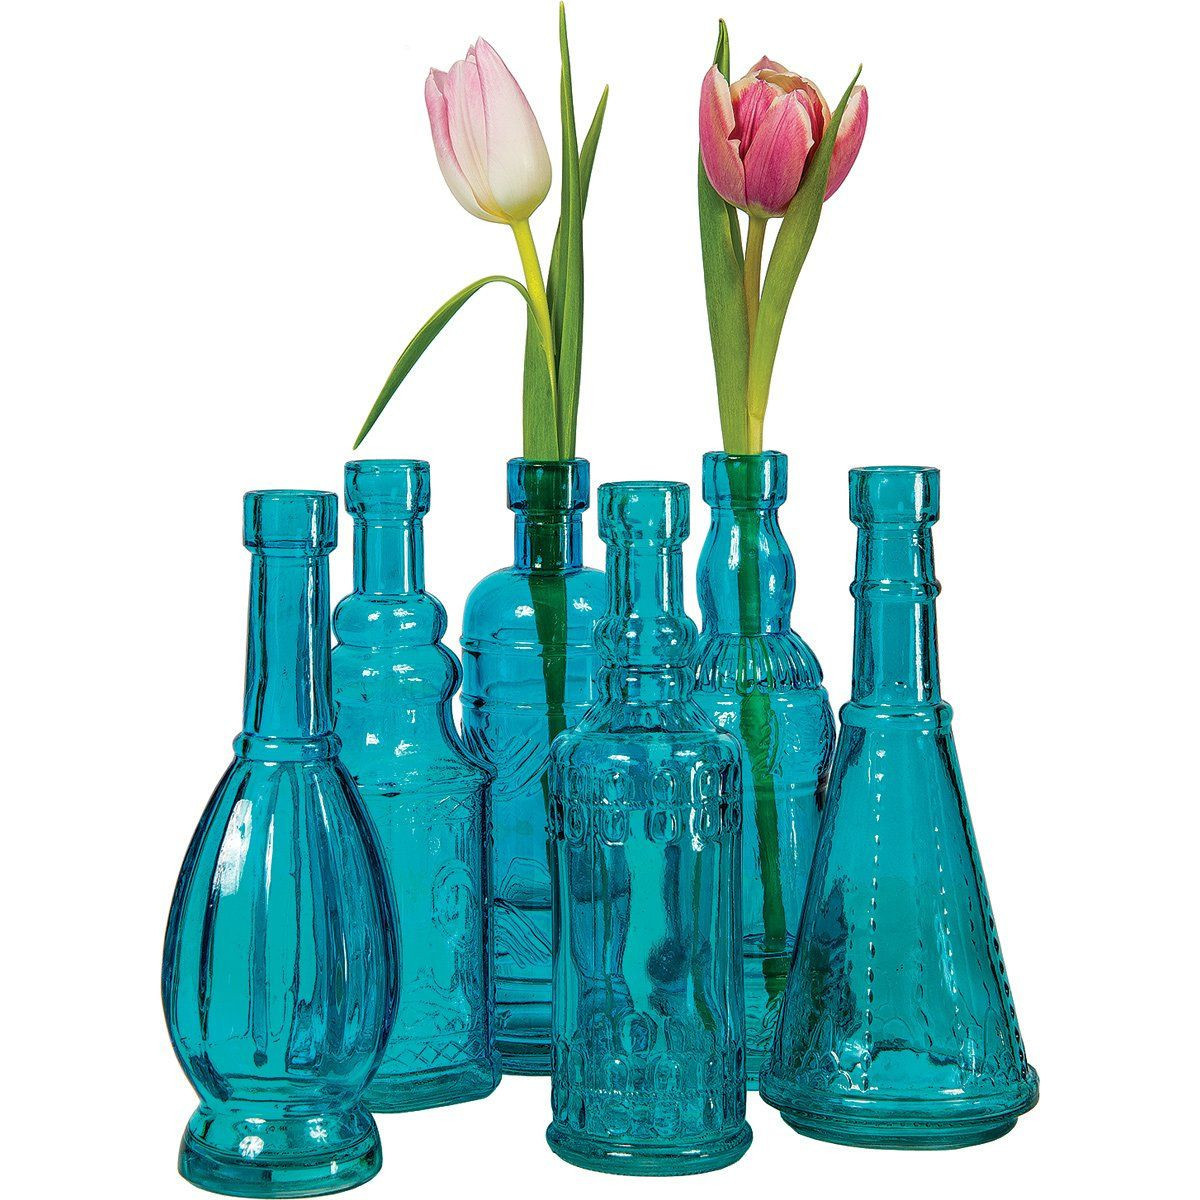 small vintage crystal vases of small crystal vase photograph luna bazaar small vintage glass bottle for small crystal vase photograph luna bazaar small vintage glass bottle set 7 inch turquoise blue of